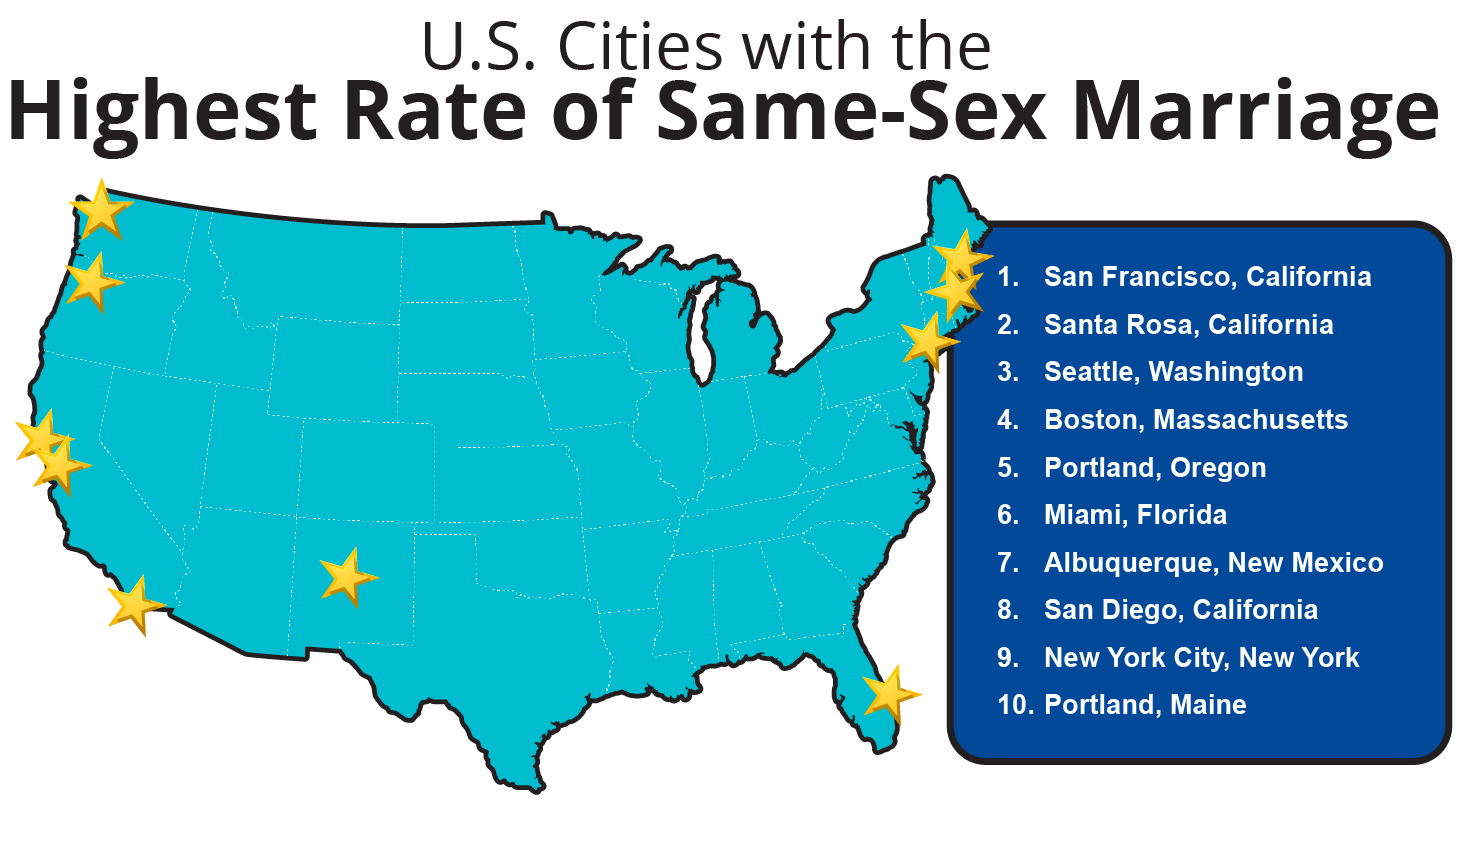 US Cities with the Highest Rates of Same-Sex Marriage